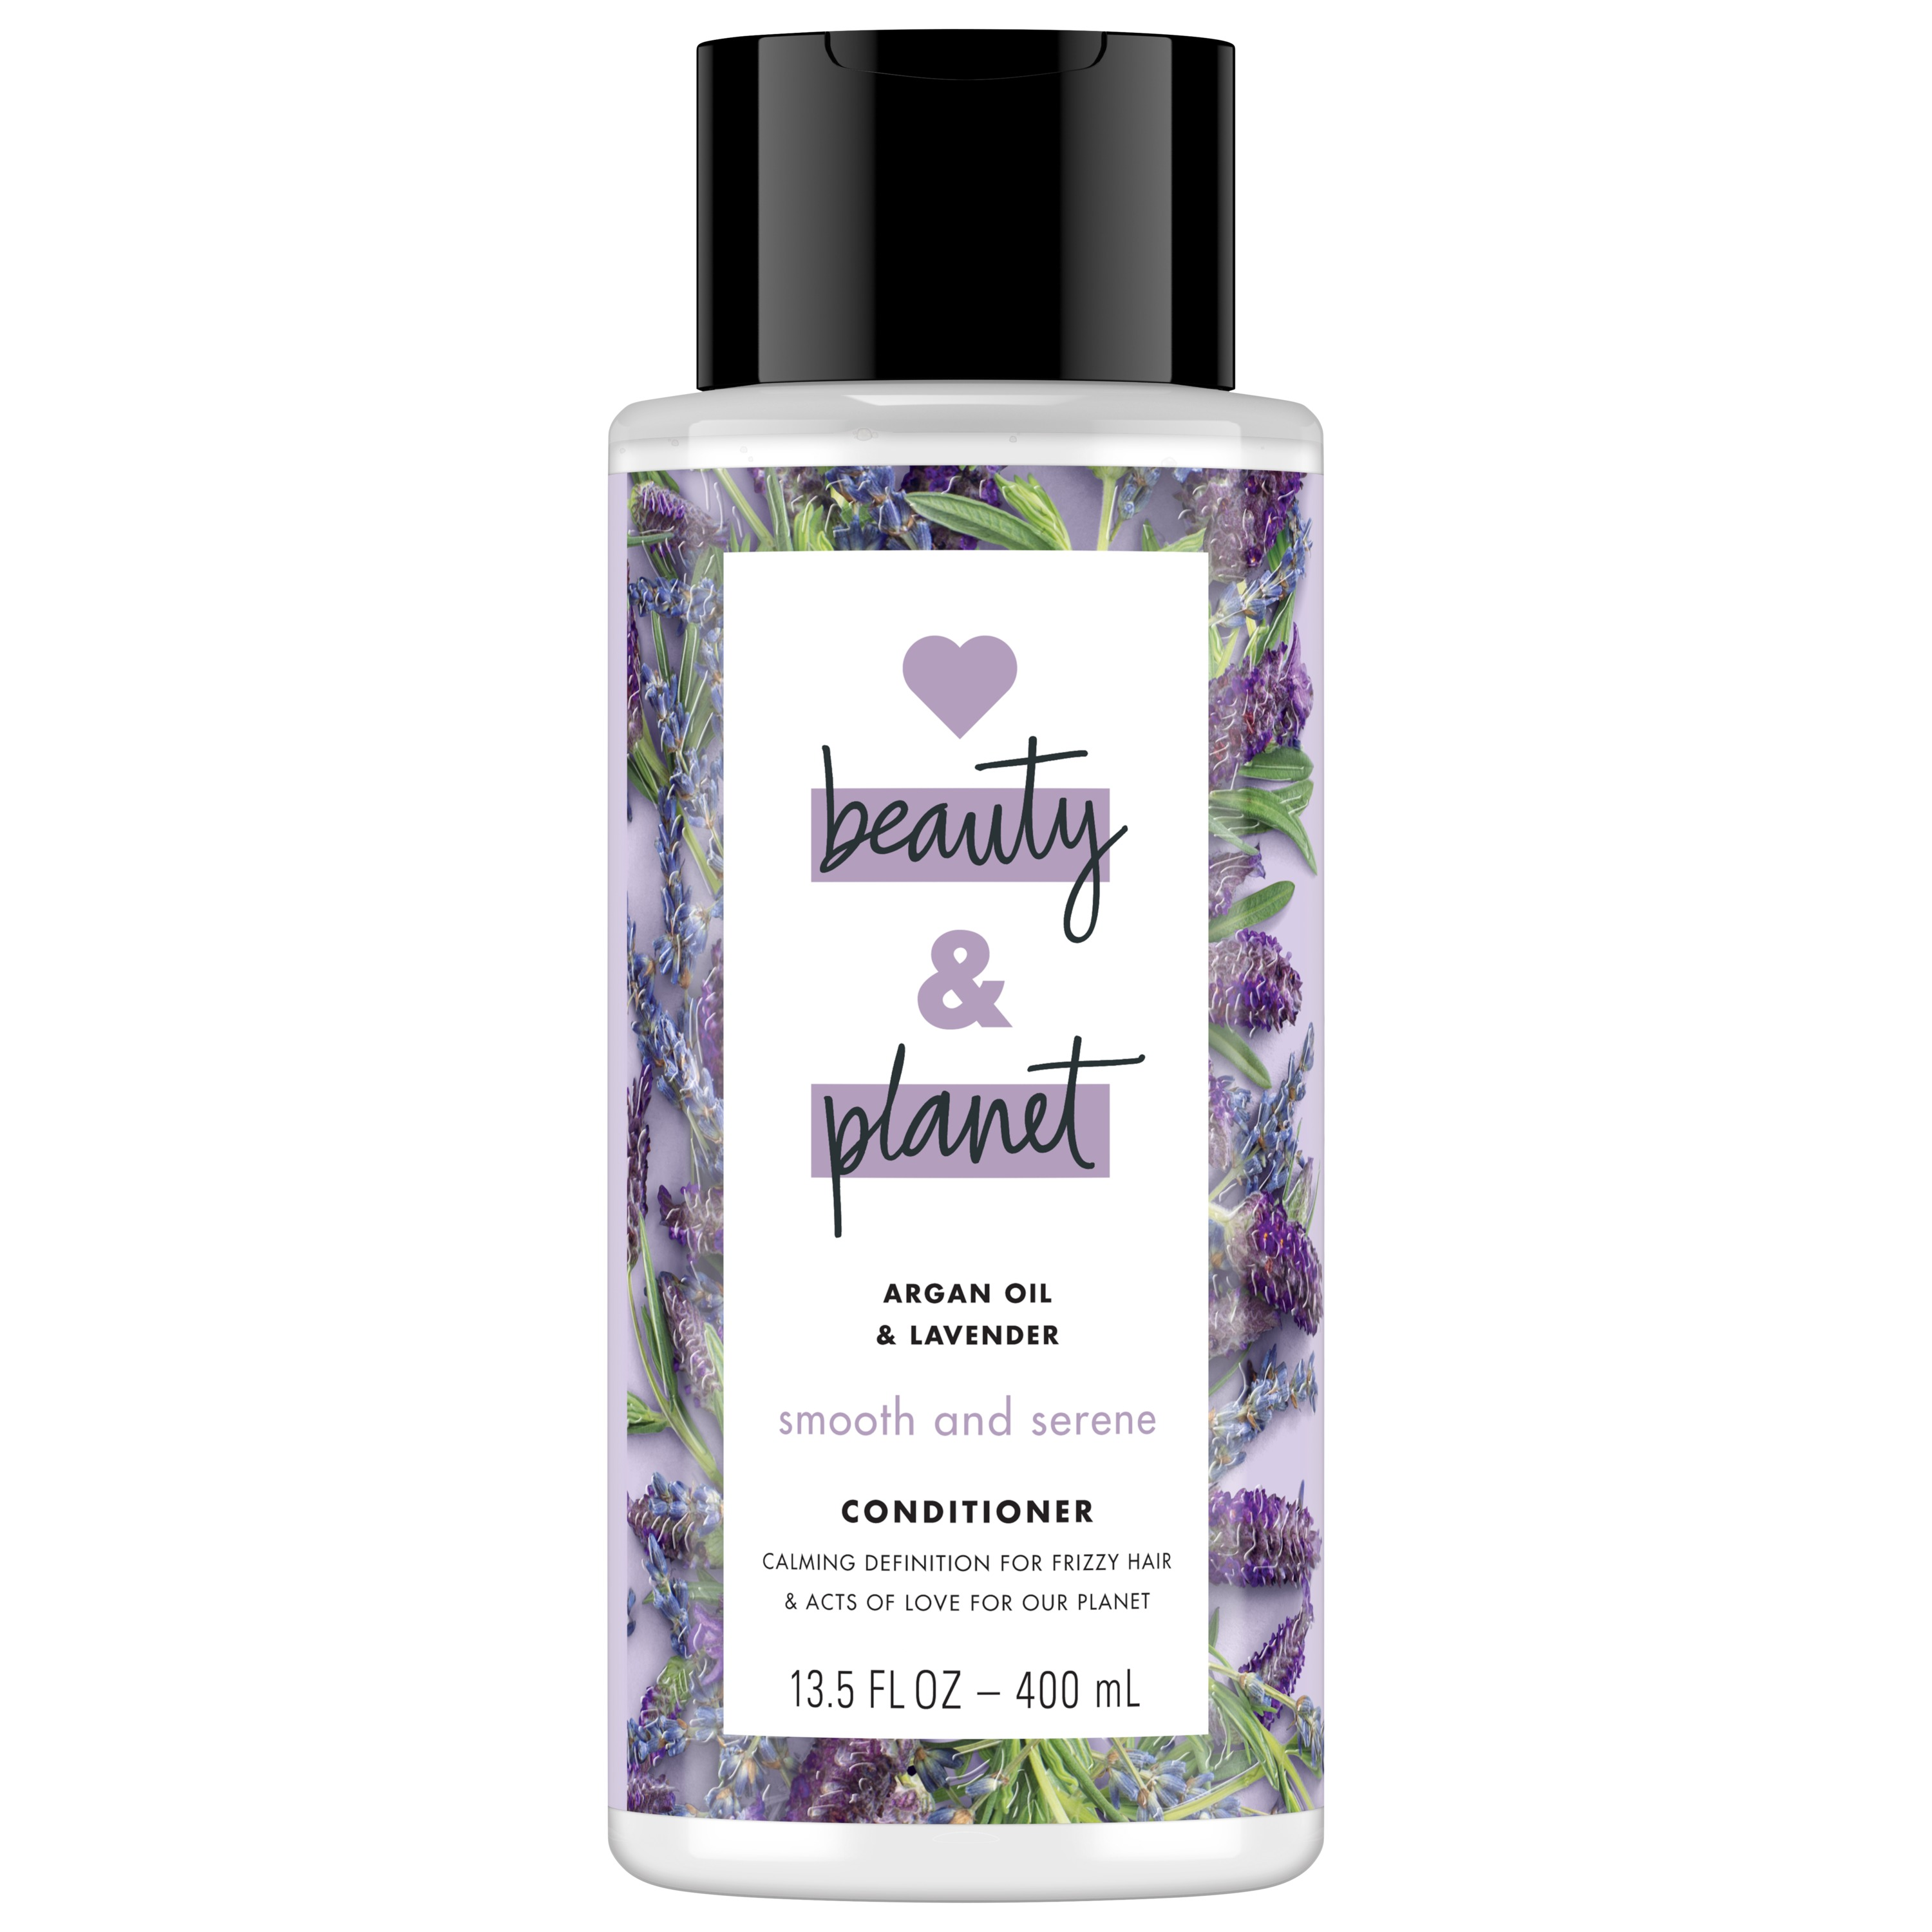 Love Beauty And Planet Smooth and Serene Argan Oil Conditioner, Argan Oil & Lavender 13.5 oz